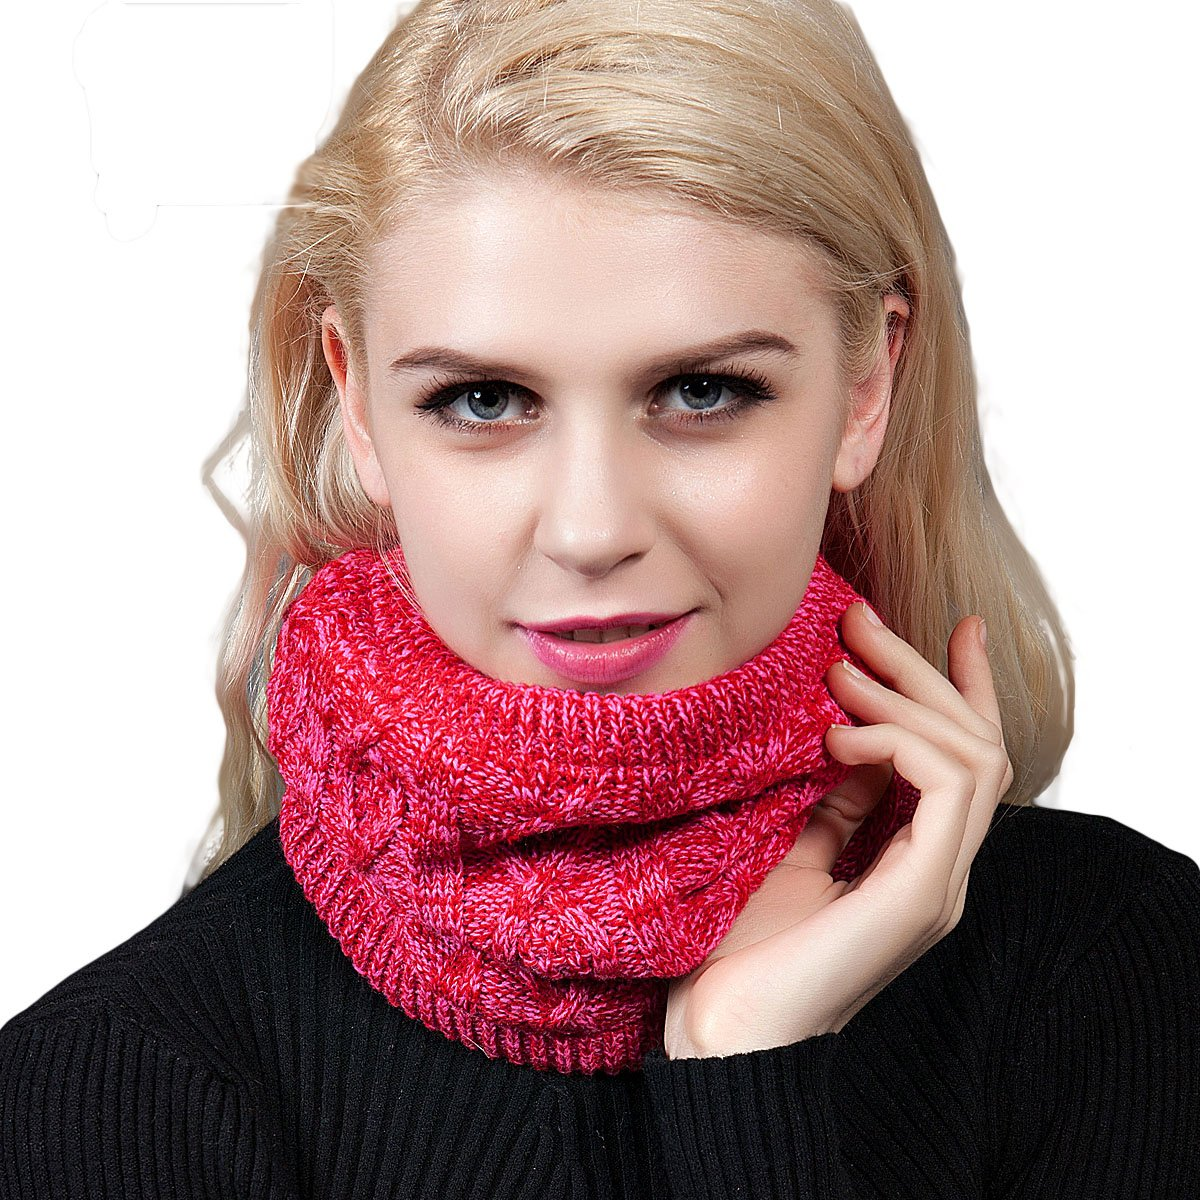 Roffatide Unisex Harsh Winter Double-Layer Soft Fleece Lined Thick Knit Neck Warmer Circle Scarf Windproof